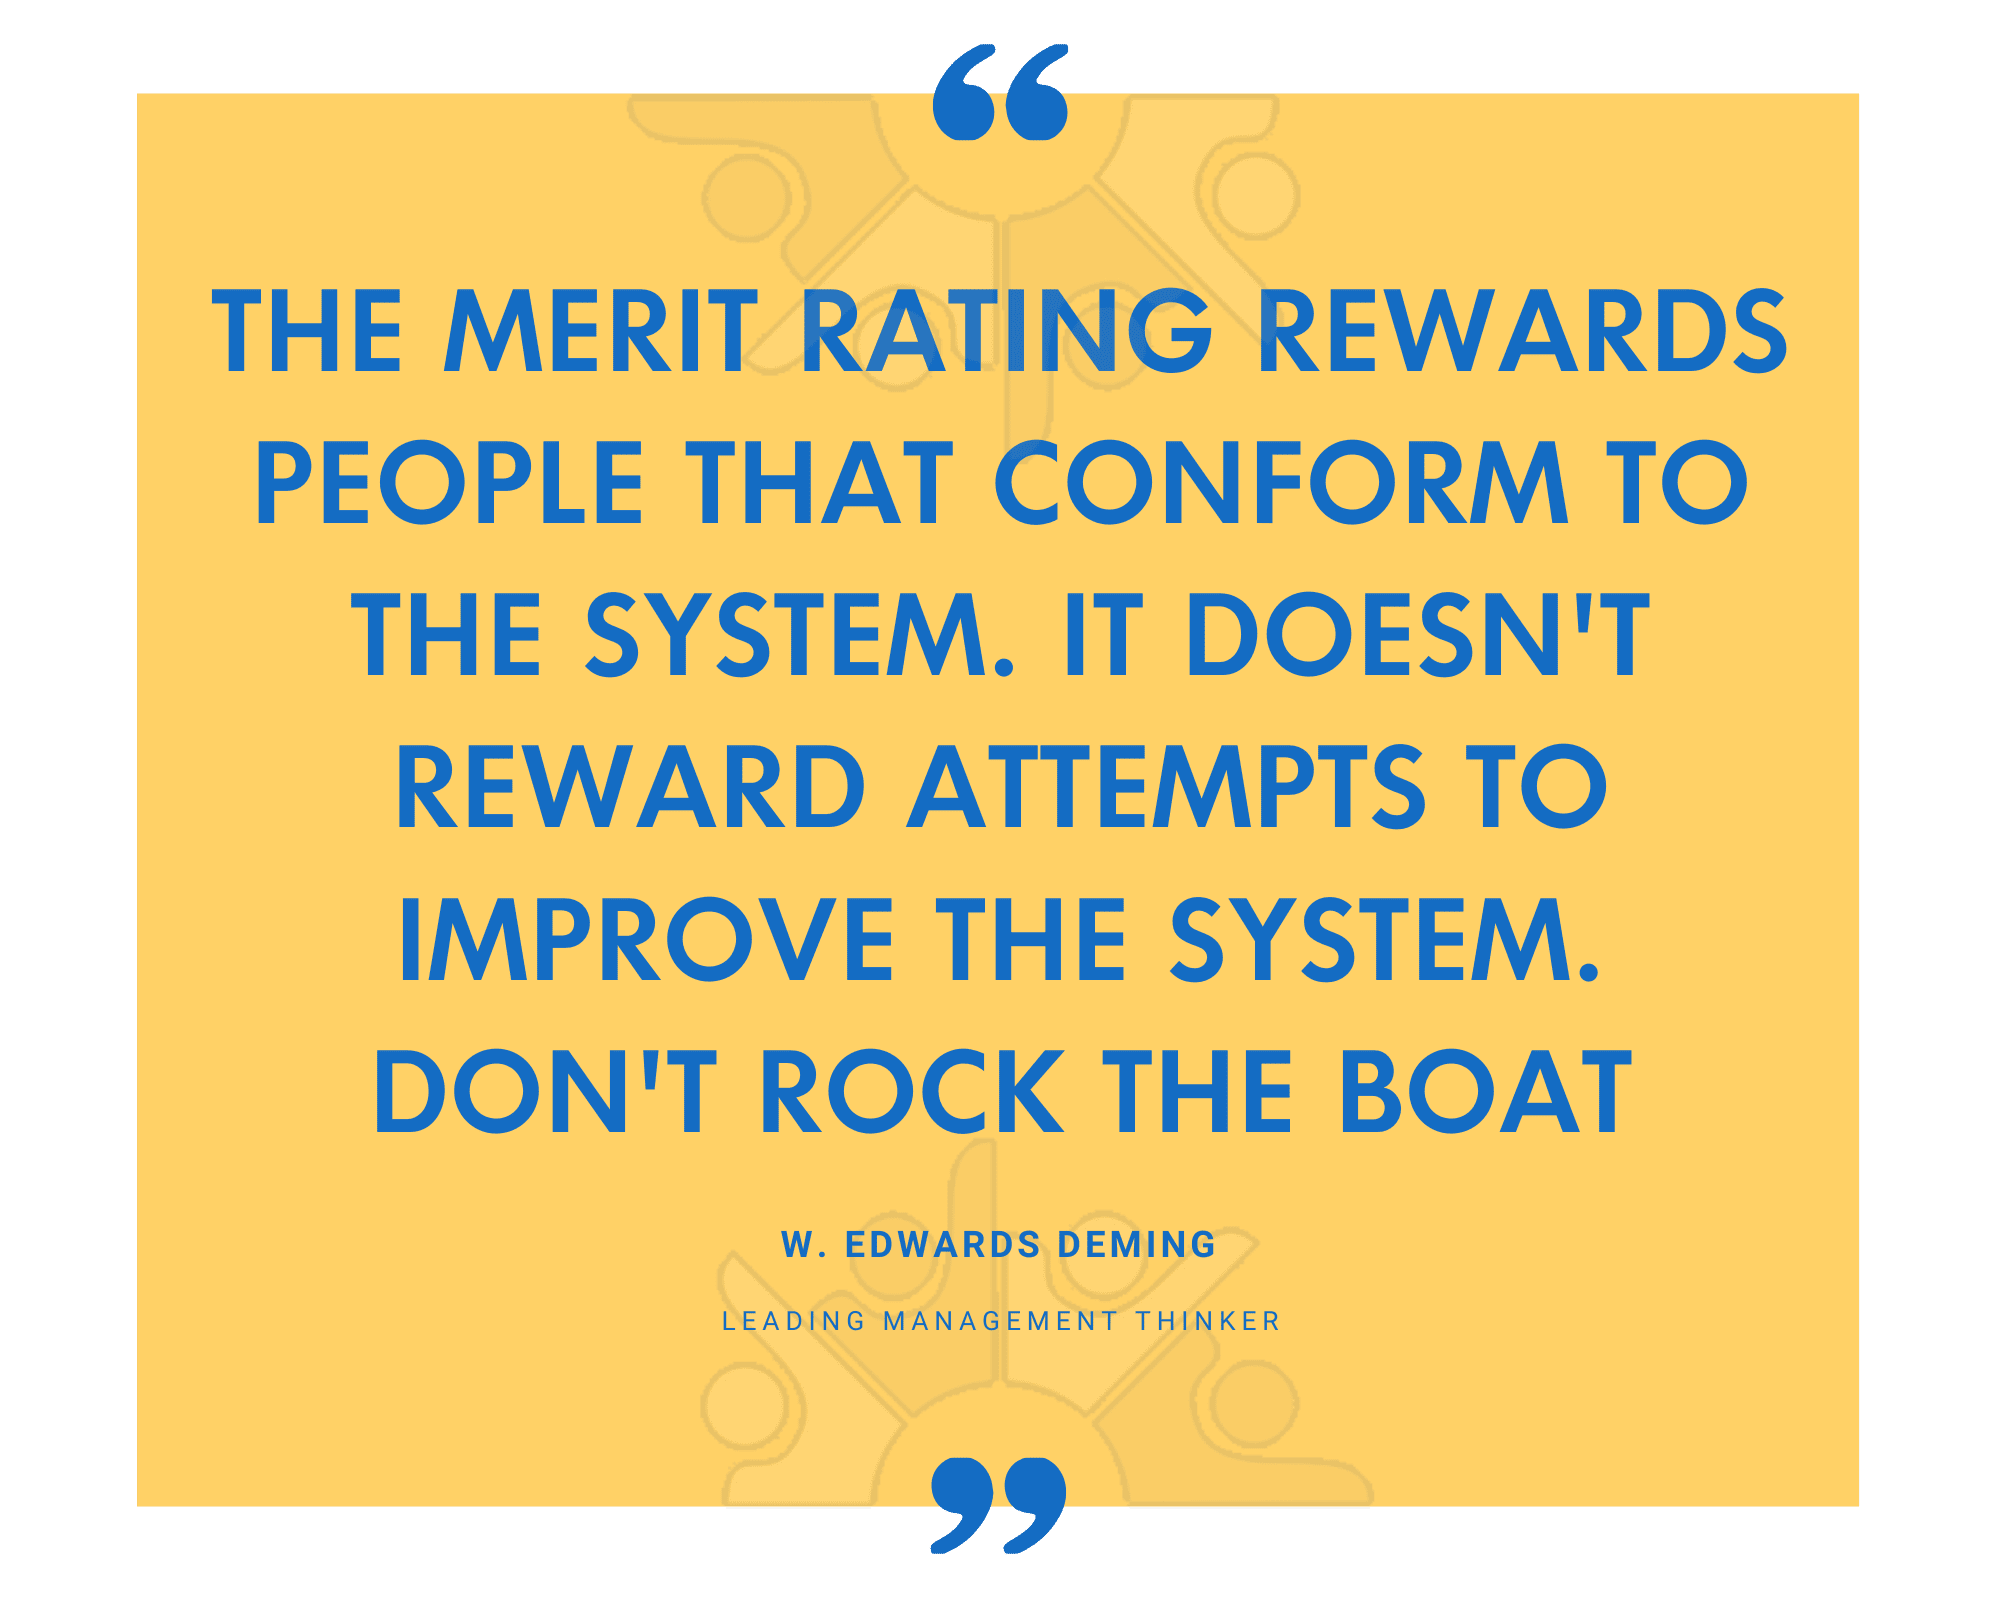 QUOTE The merit rating rewards people that conform to the system